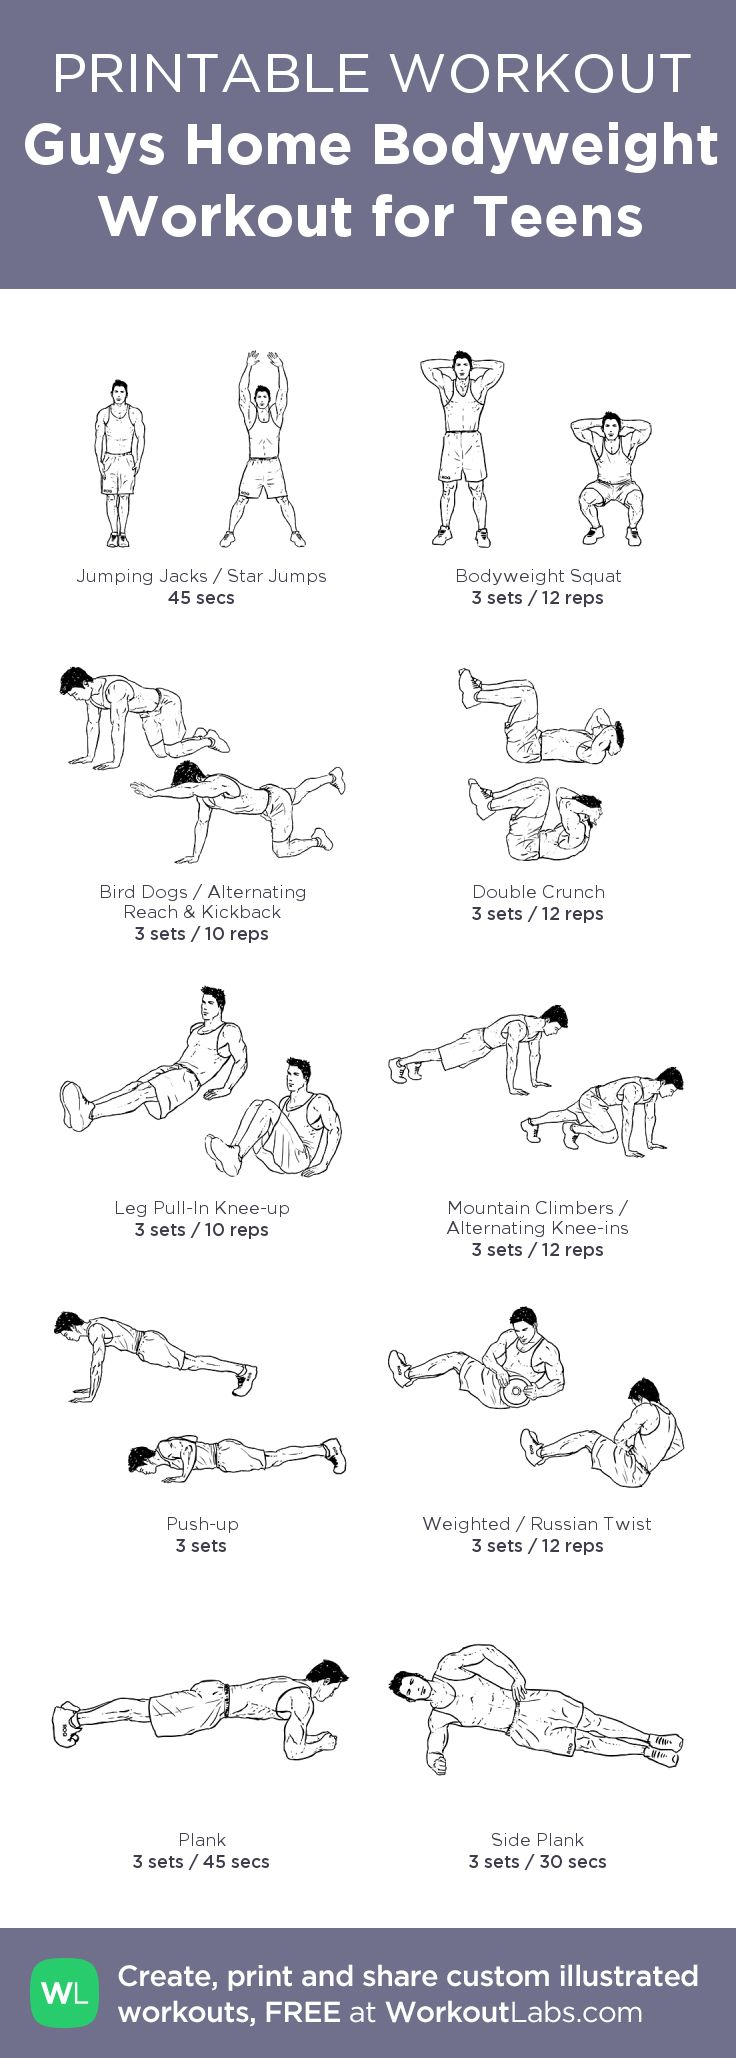 Guys Home Bodyweight Workout for Teens – Visit http://workoutlabs.com/custom-workout-builder/?tl1=Guys%20Home%20Bodyweight%20Workout%20for%20Teensa1=2239b1=0c1=45sa2=1293b2=3c2=12a3=3488b3=3c3=10a4=3589b4=3c4=12a5=3338b5=3c5=10a6=1970b6=3c6=12tl2=Name%20your%20workouta7=1111b7=3c7=0sa8=1308b8=3c8=12a9=1349b9=3c9=45sa10=1732b10=3c10=30stms=1403468593562 to download as printable PDF! #customworkout